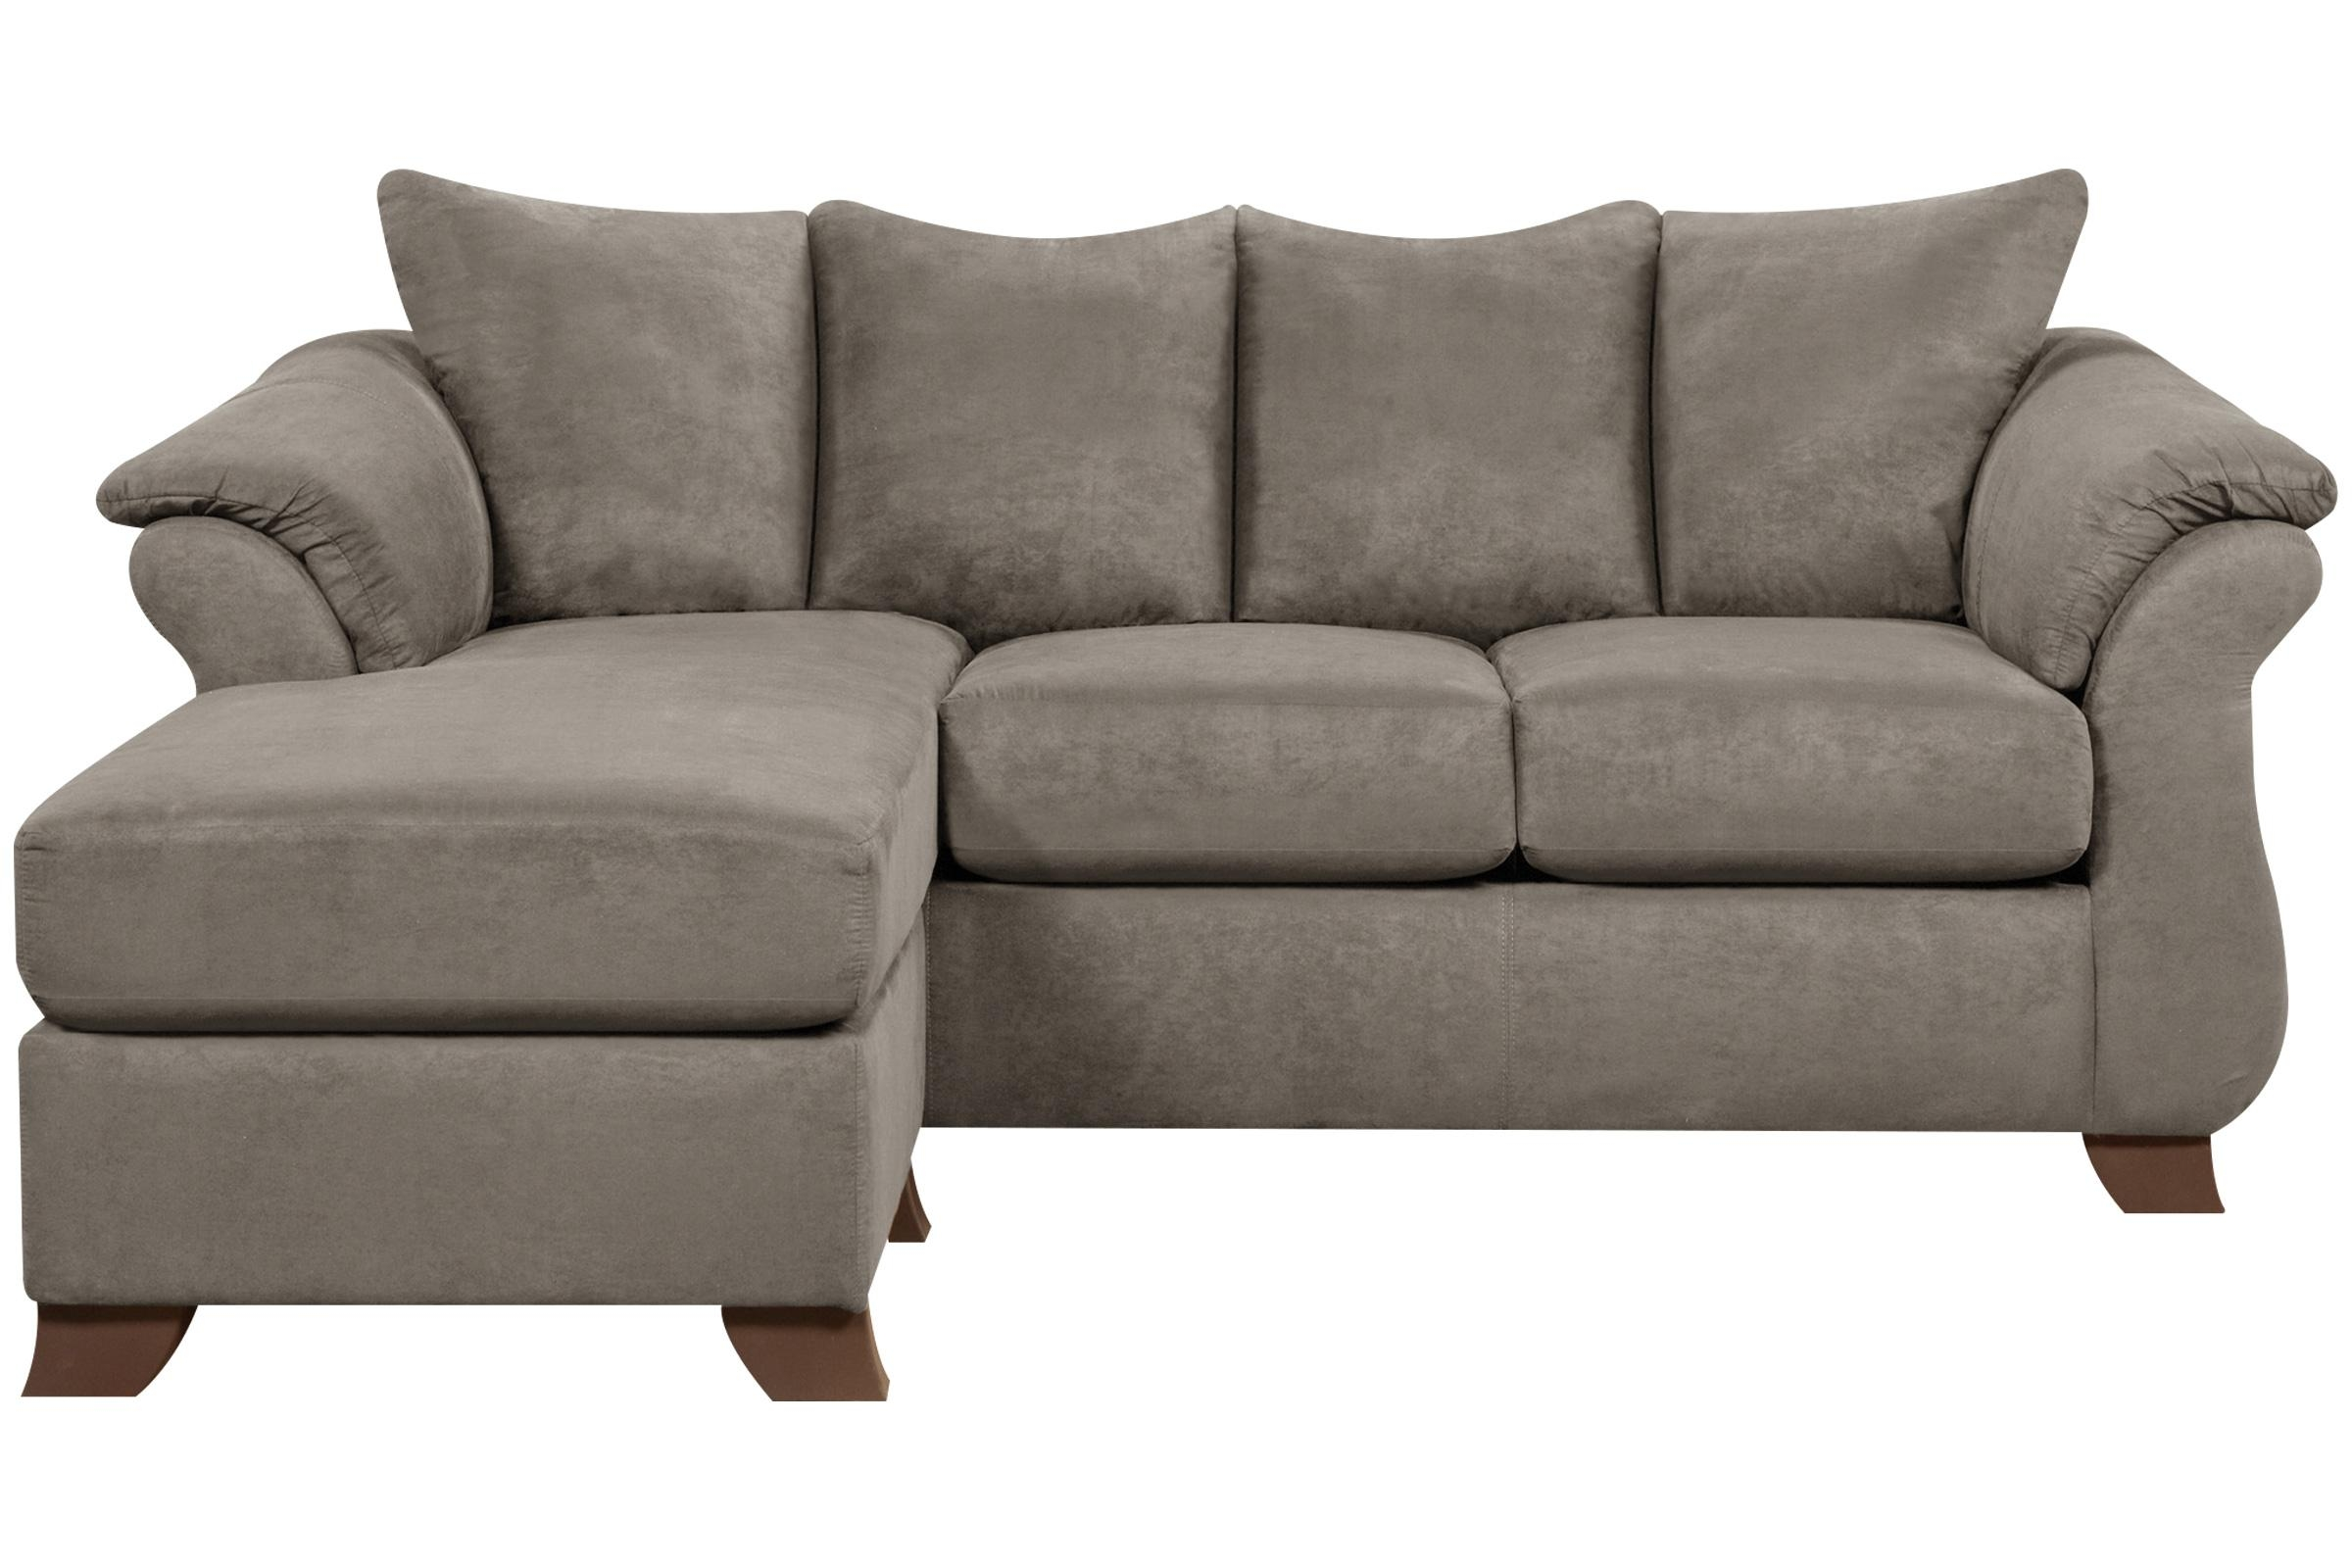 Upton Microfiber Sofa With Floating Ottoman In Floating Sofas (View 11 of 20)